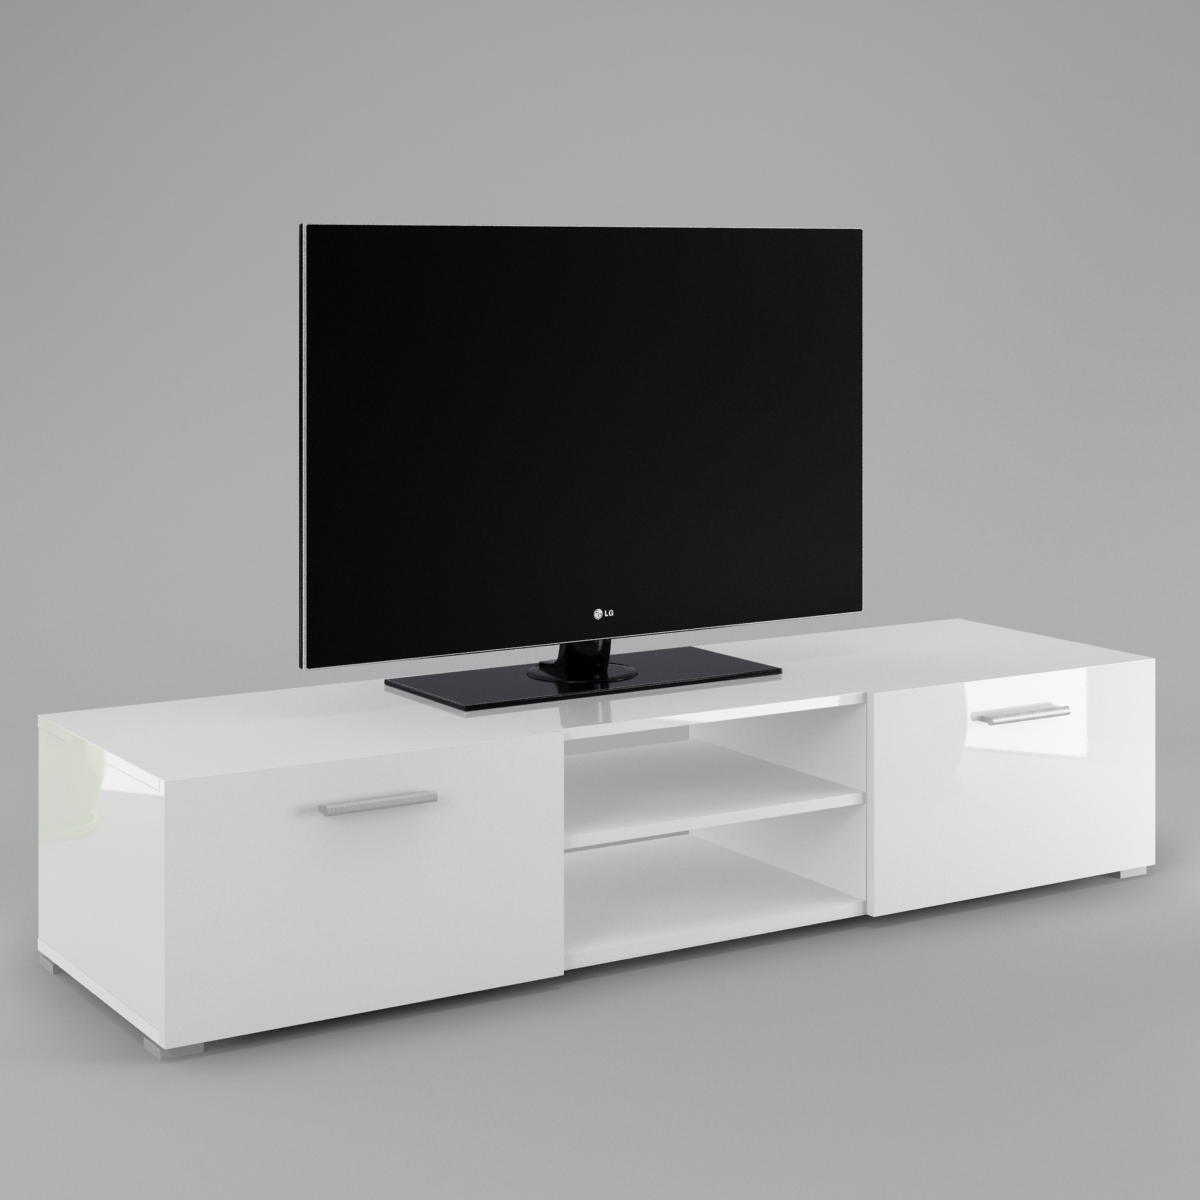 tv tisch mit rollen tv hifi rack tv board tv tisch auf rollen bware with tv tisch mit rollen. Black Bedroom Furniture Sets. Home Design Ideas